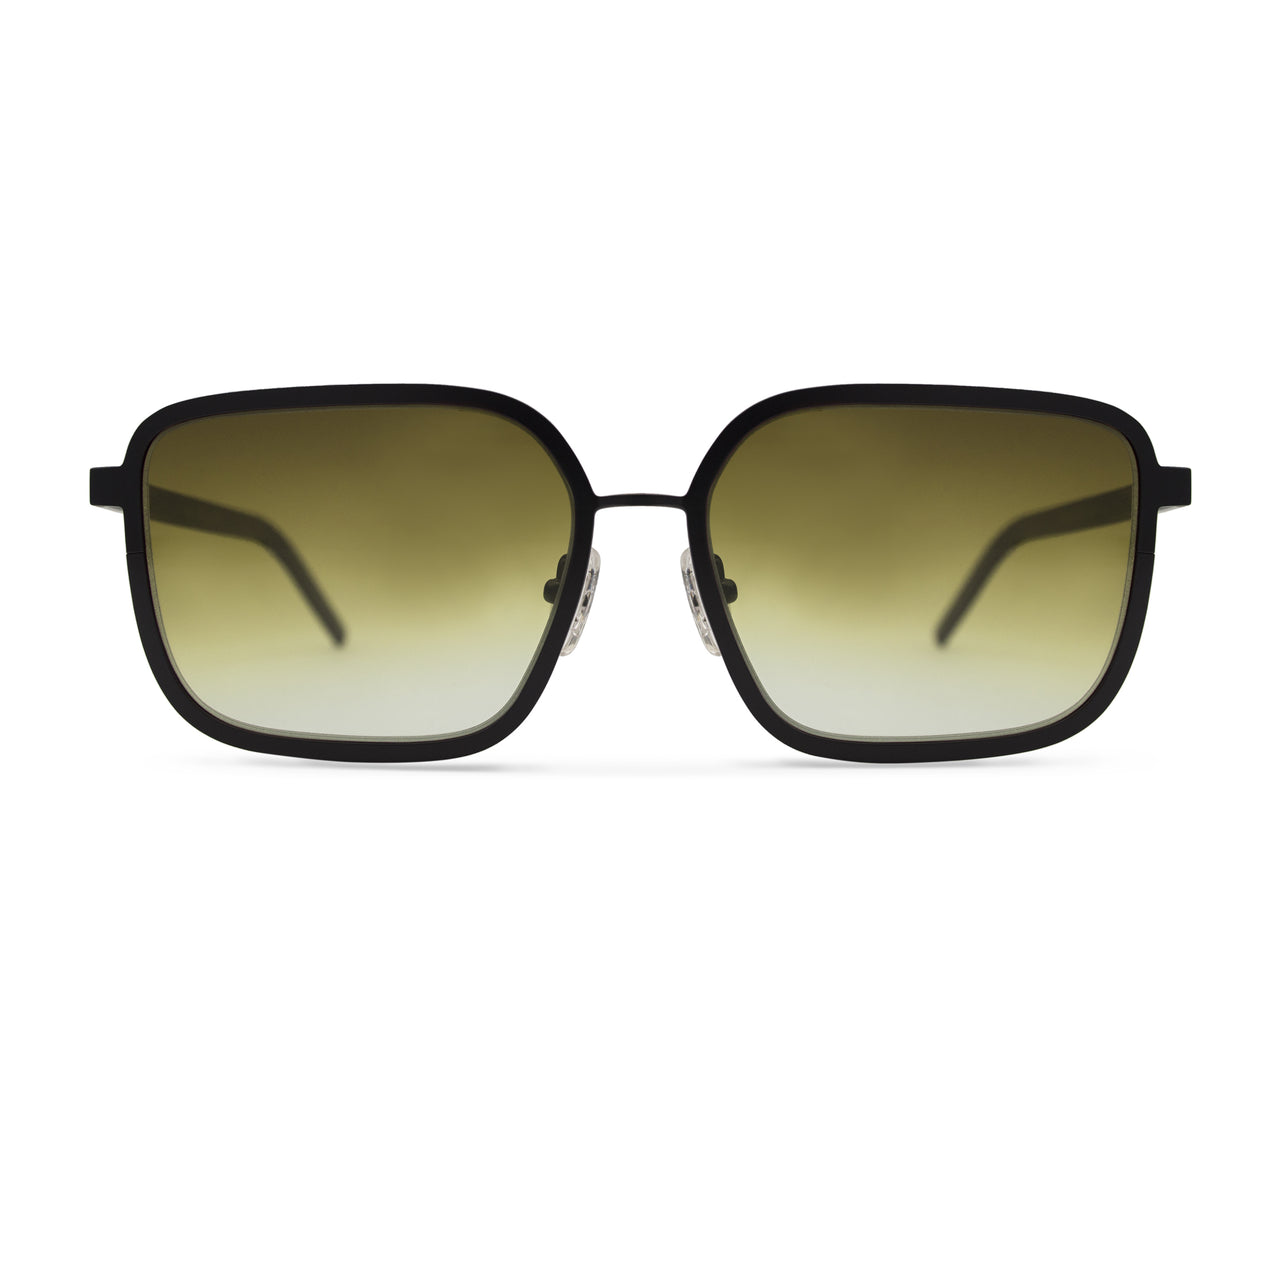 Metal. Gloss Black. Sulphur Lens. - BLYSZAK eyewear eyewear - eyewear, optical, sunglasses